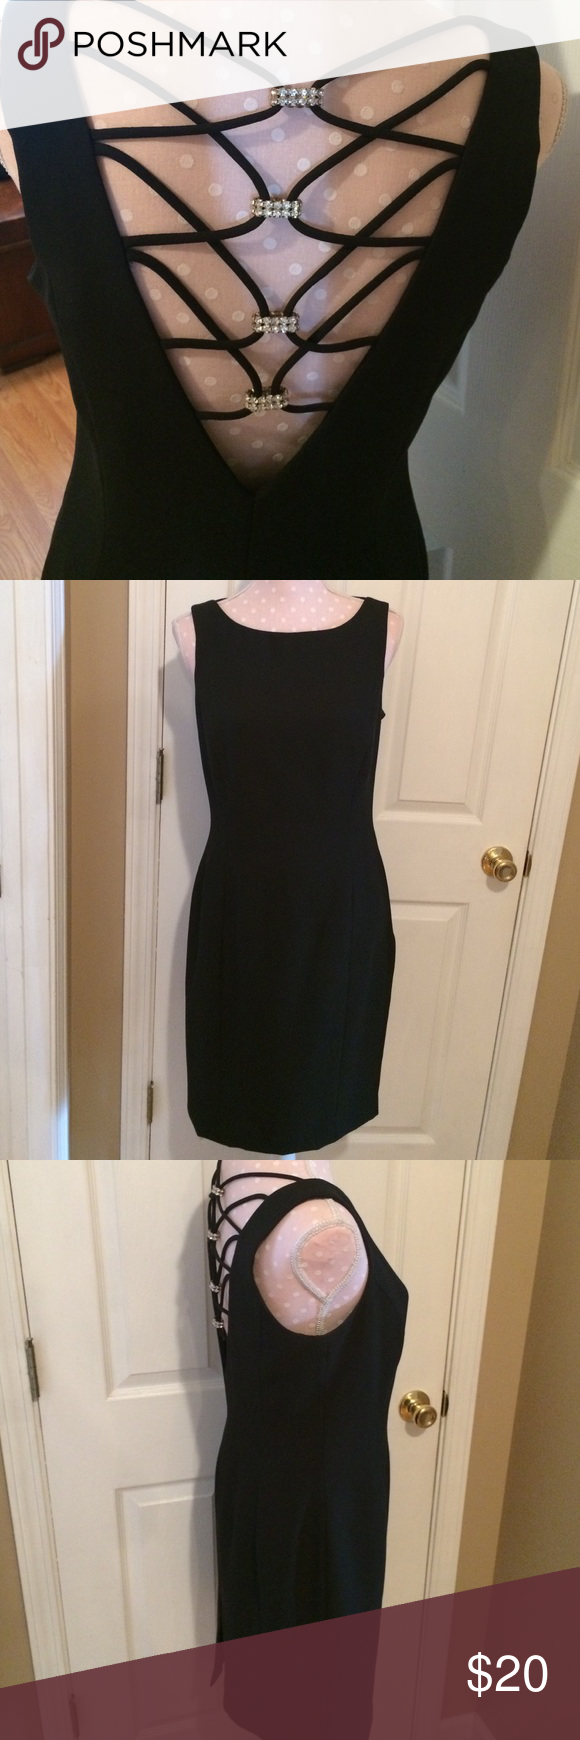 """Beautiful black dress The back is stunning. Has straps that gather with rhinestones in middle. Zips on side and fully lined. Measures 29.5"""" from armpit to hemline. Bust measures approx 17"""". Absolutely beautiful dress in excellent shape. Pic one is of back Dresses"""